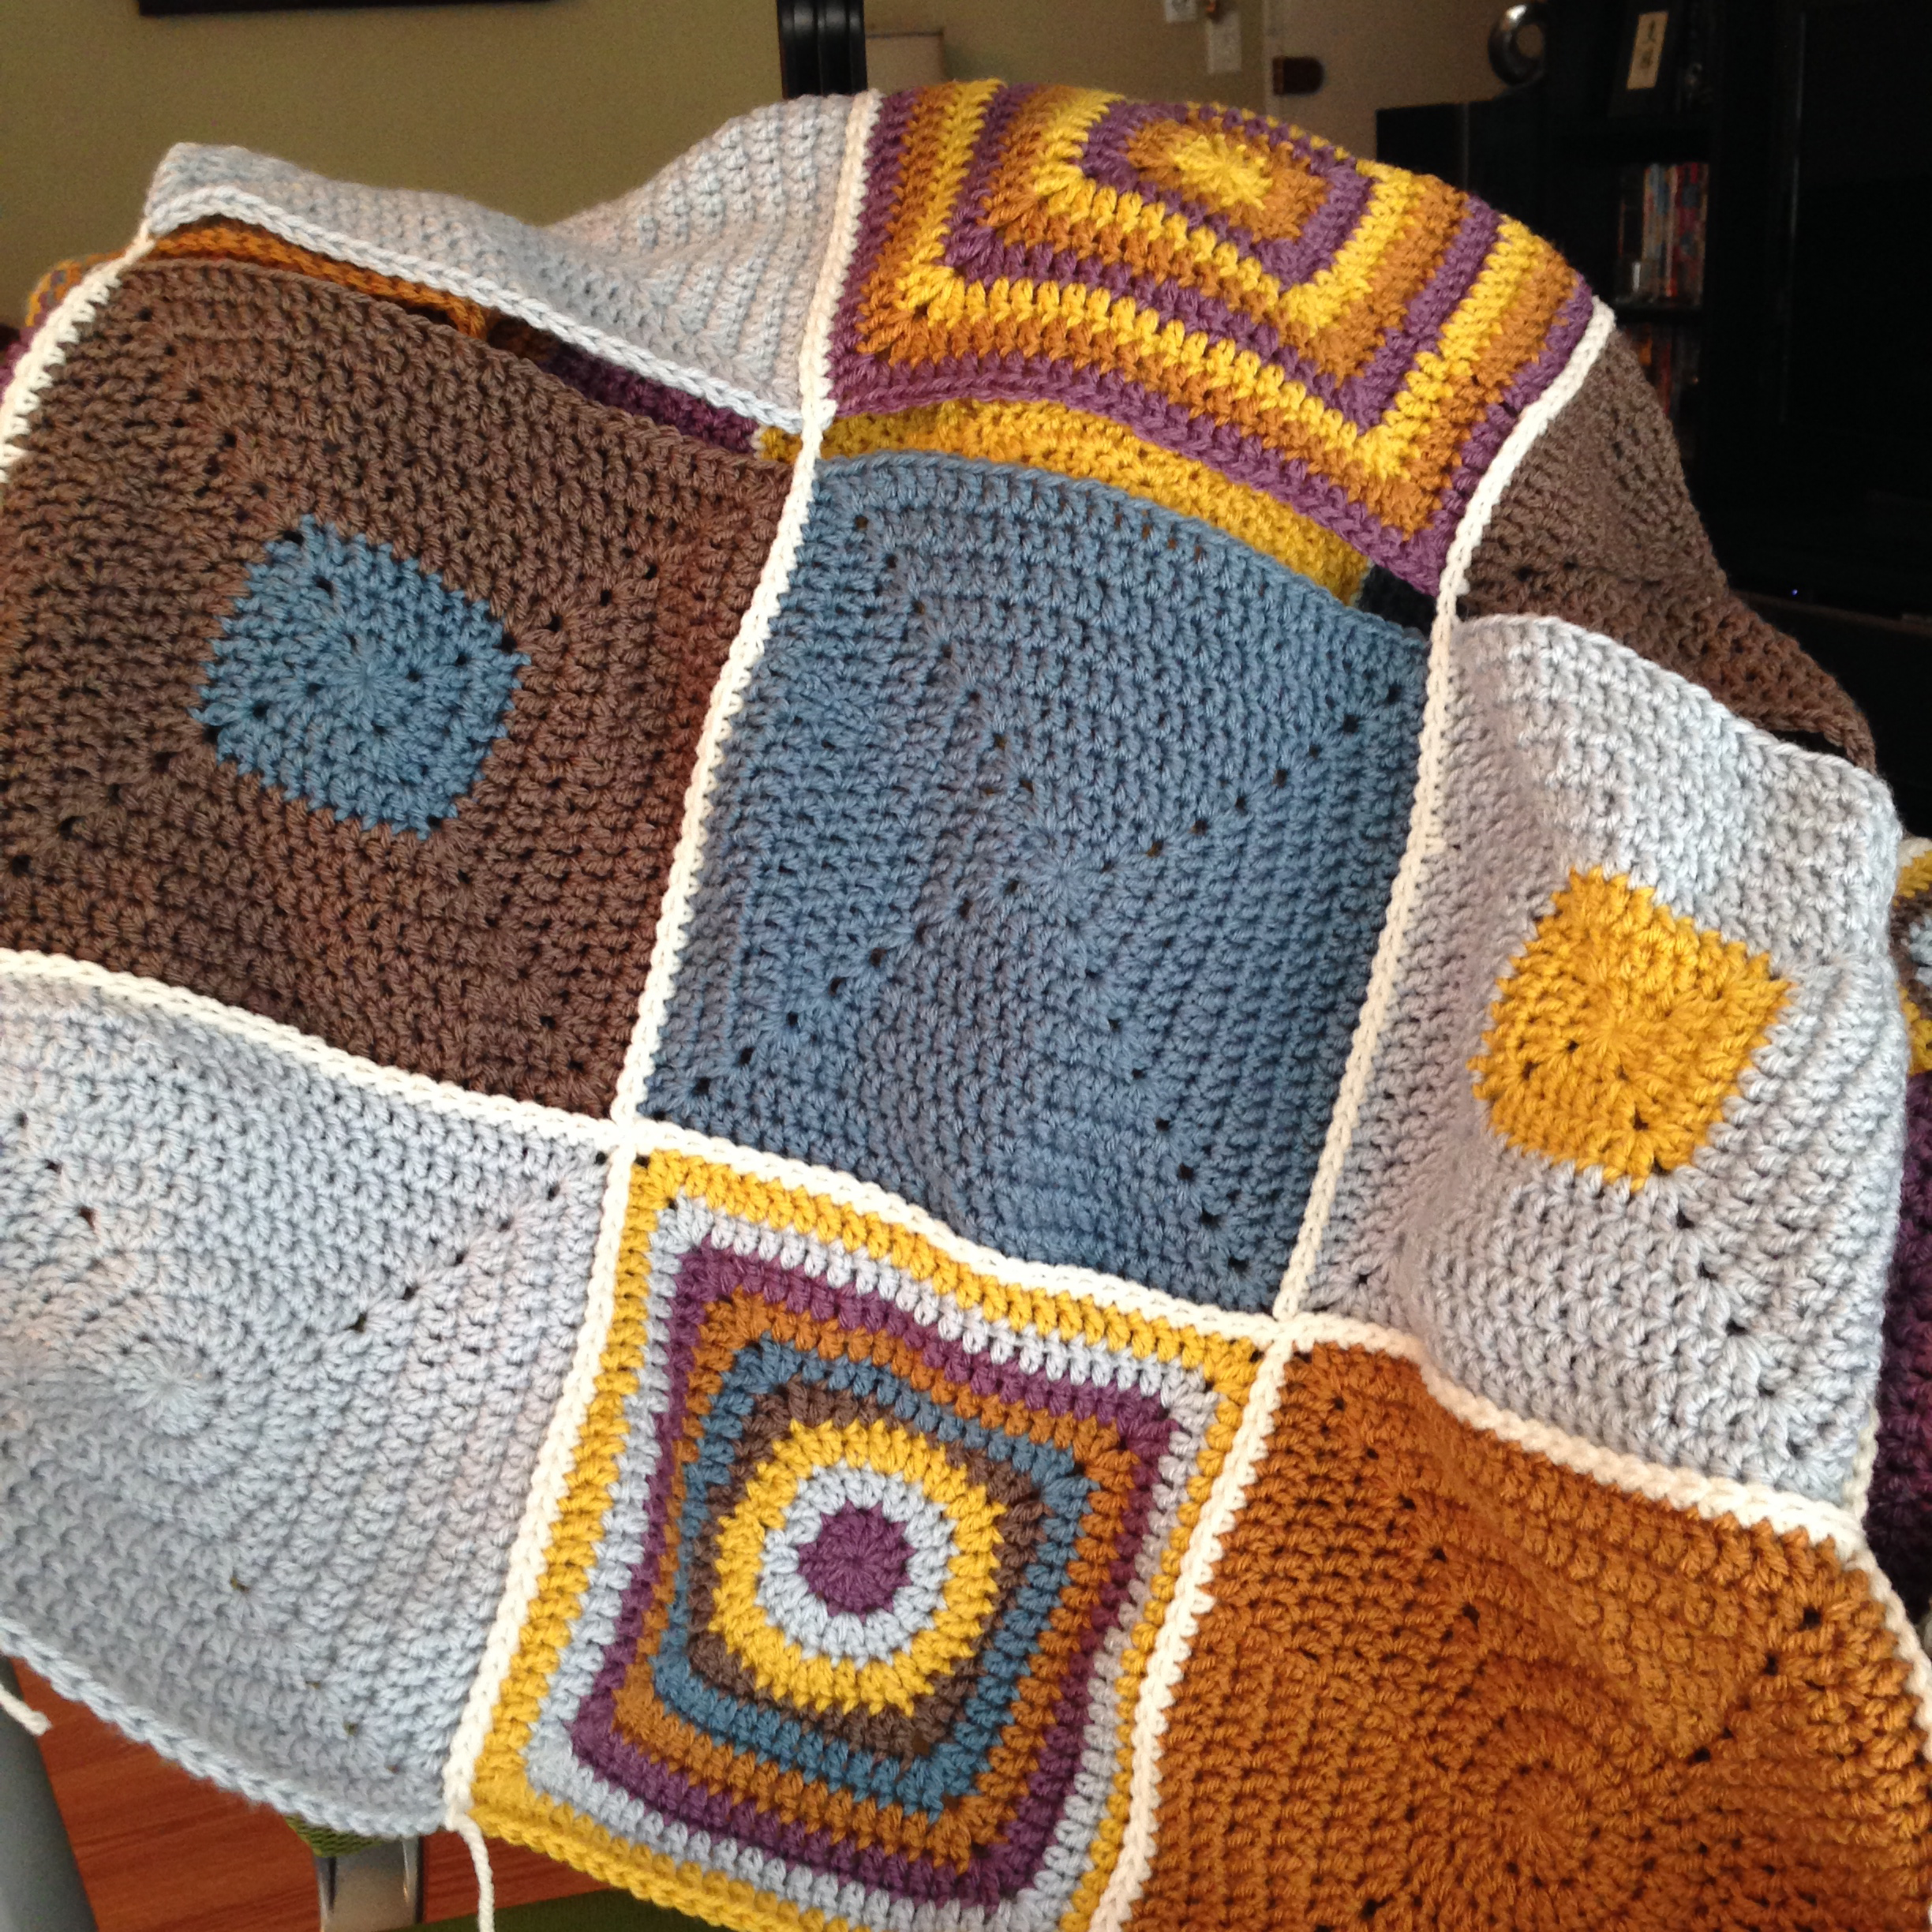 Funky Square Blanket - Color Me Reckless